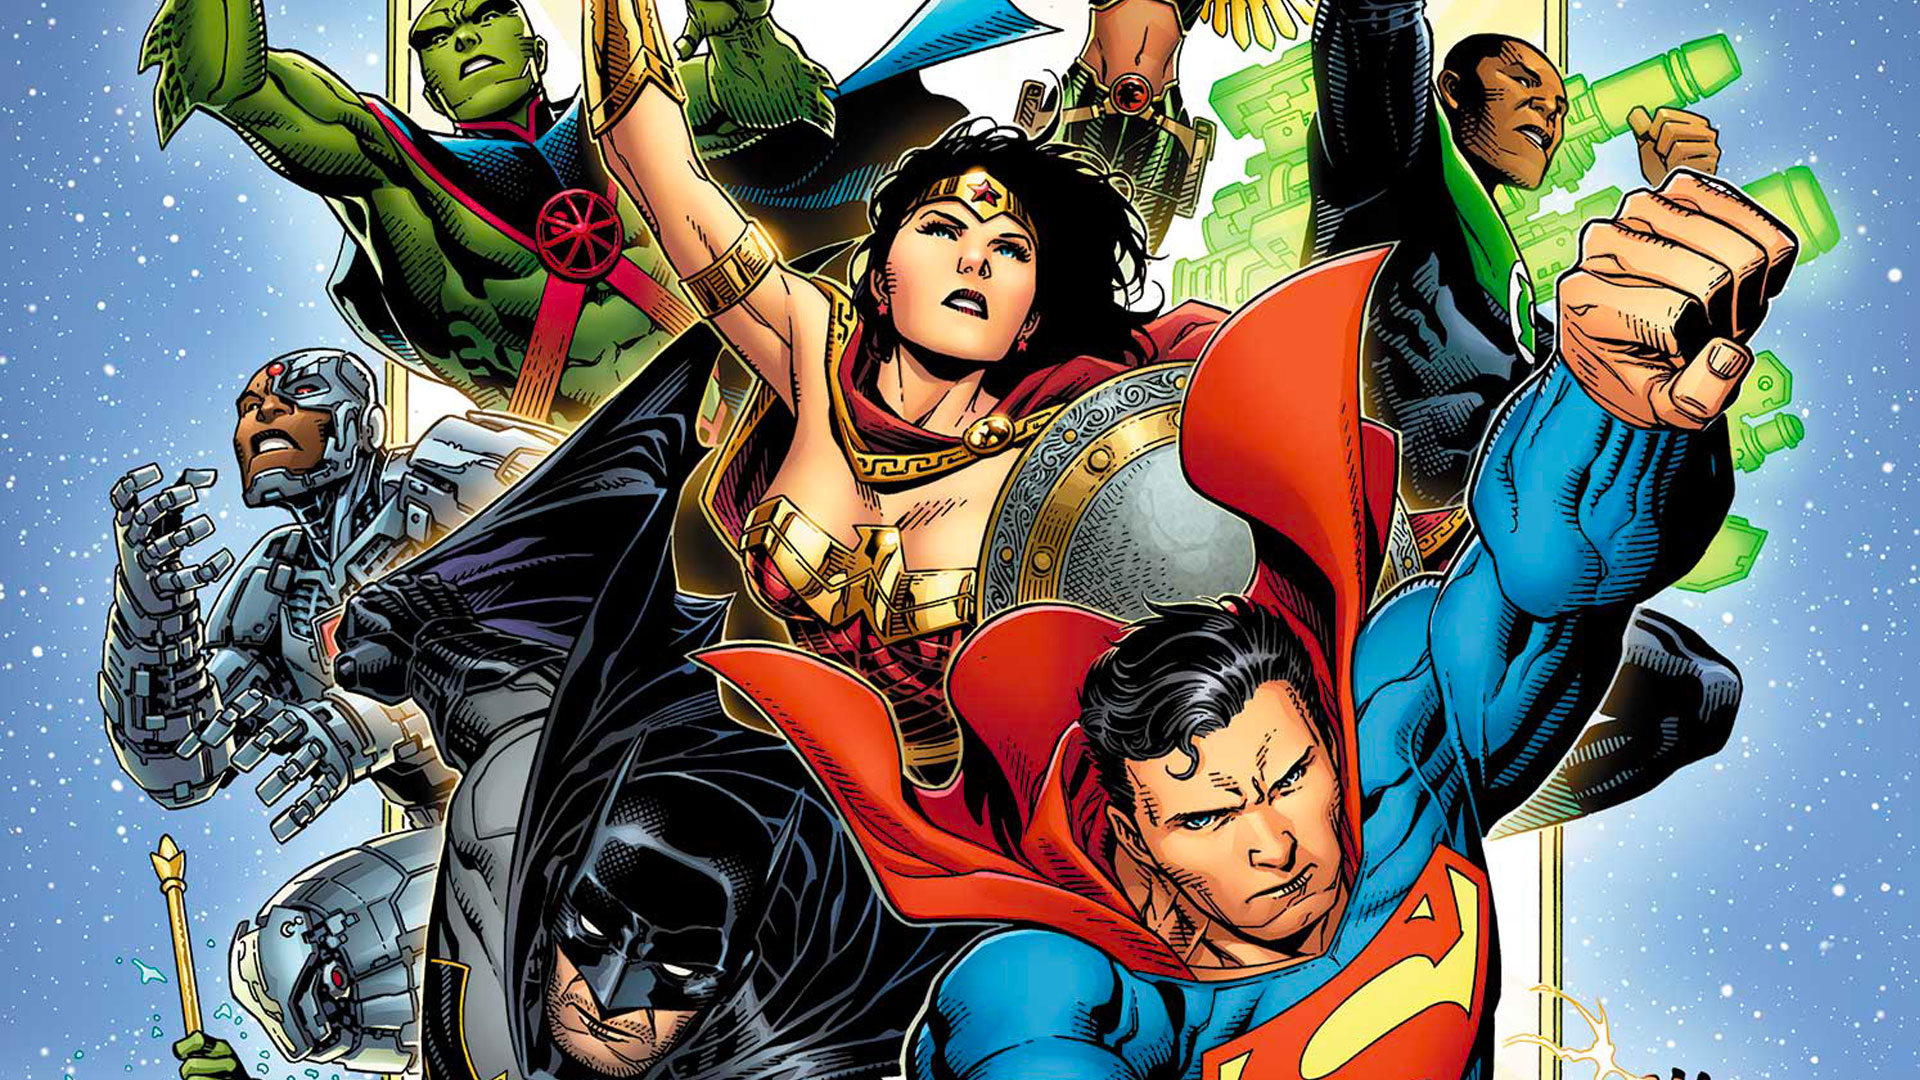 Justice League New Justice Dc